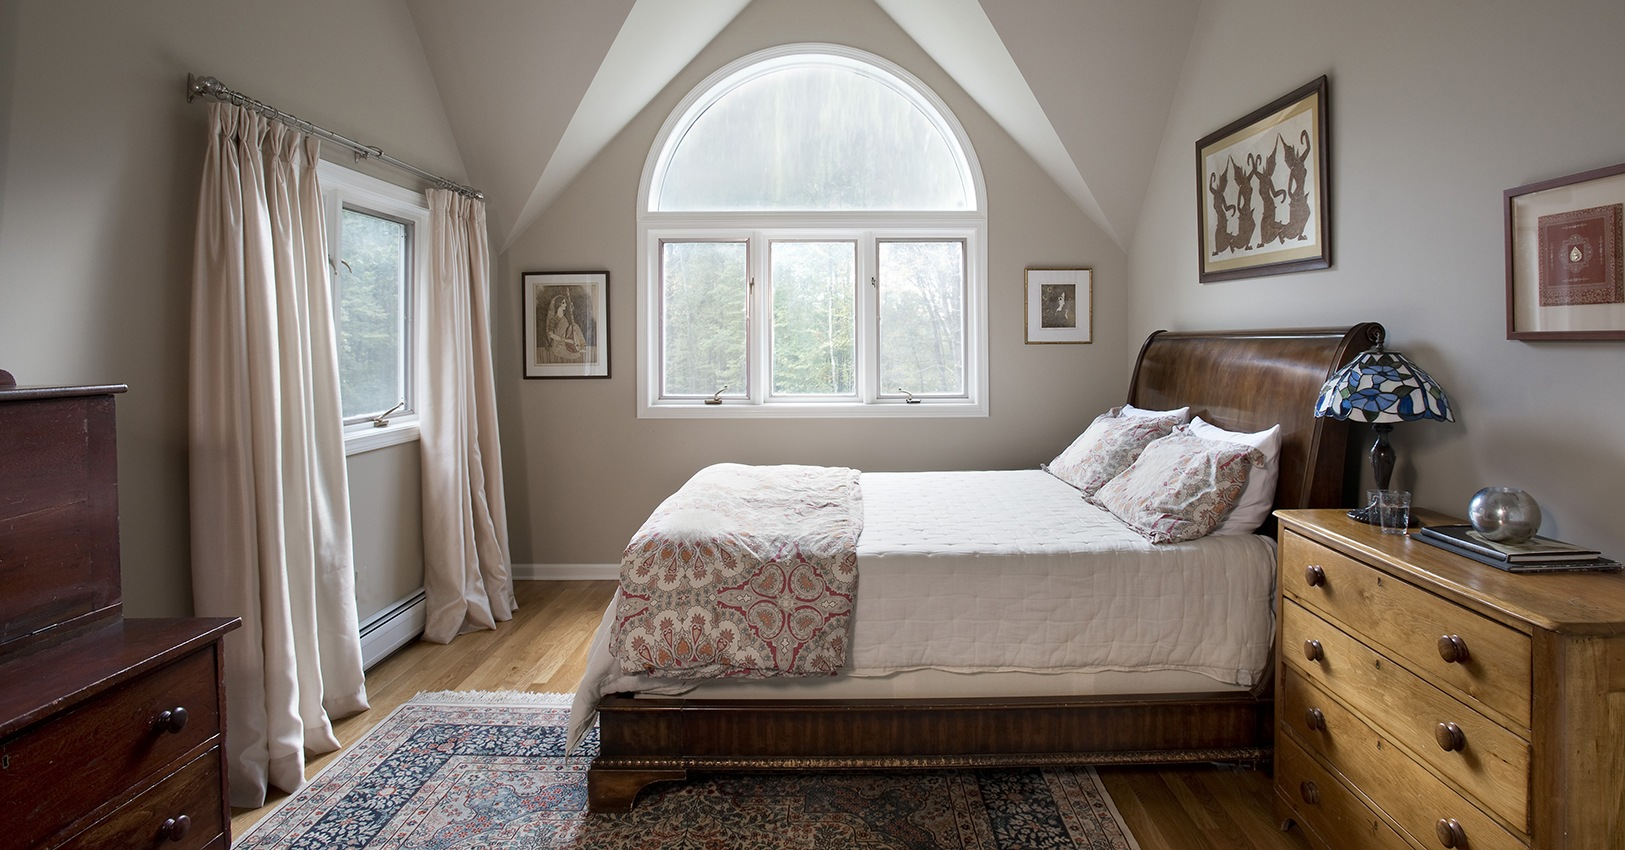 Guest bedroom with symmetrical ceiling and round top window